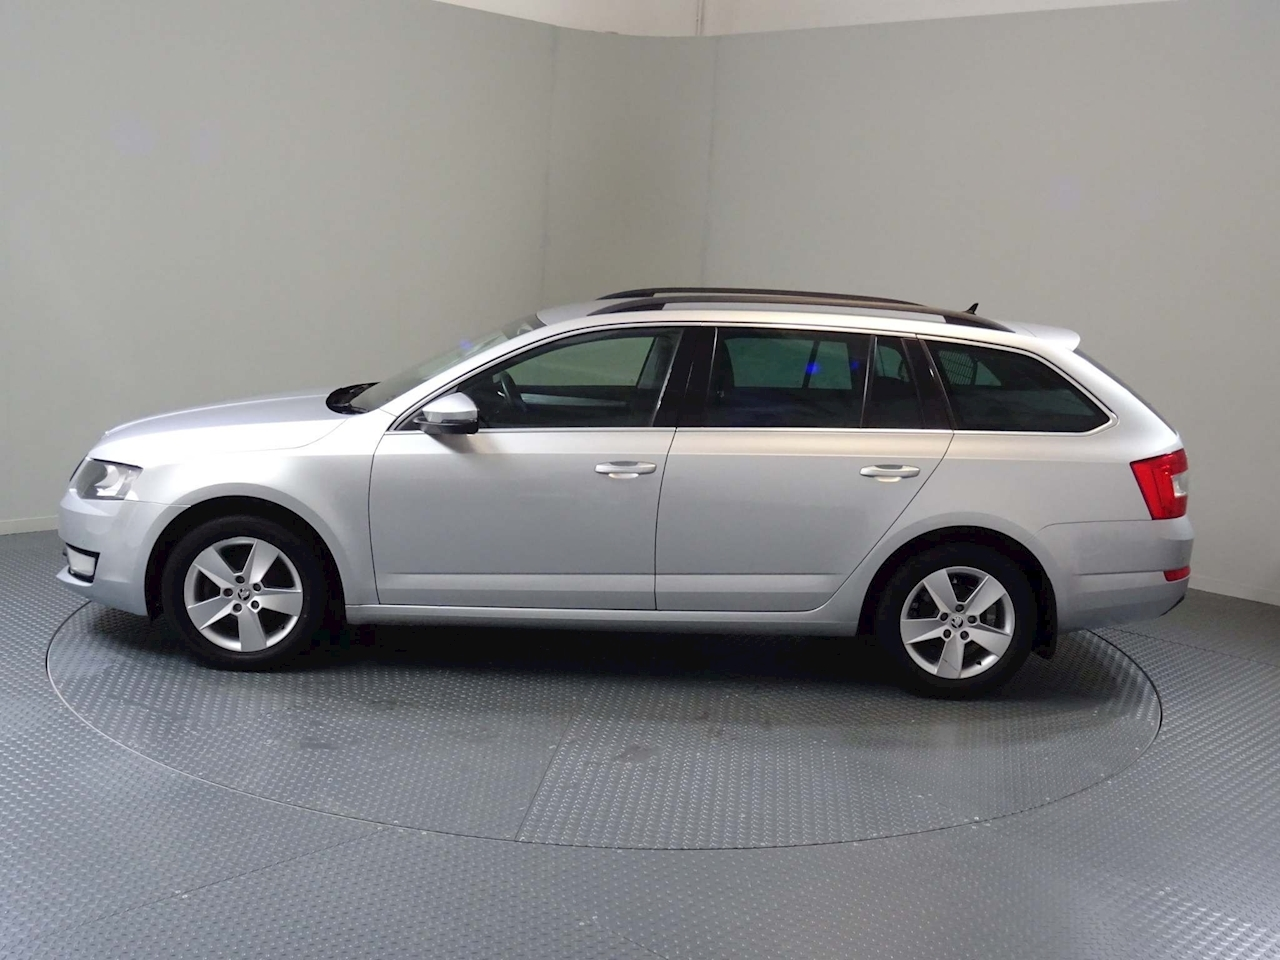 Skoda Octavia Se Technology Tdi Dsg Estate 1.6 Semi Auto Diesel